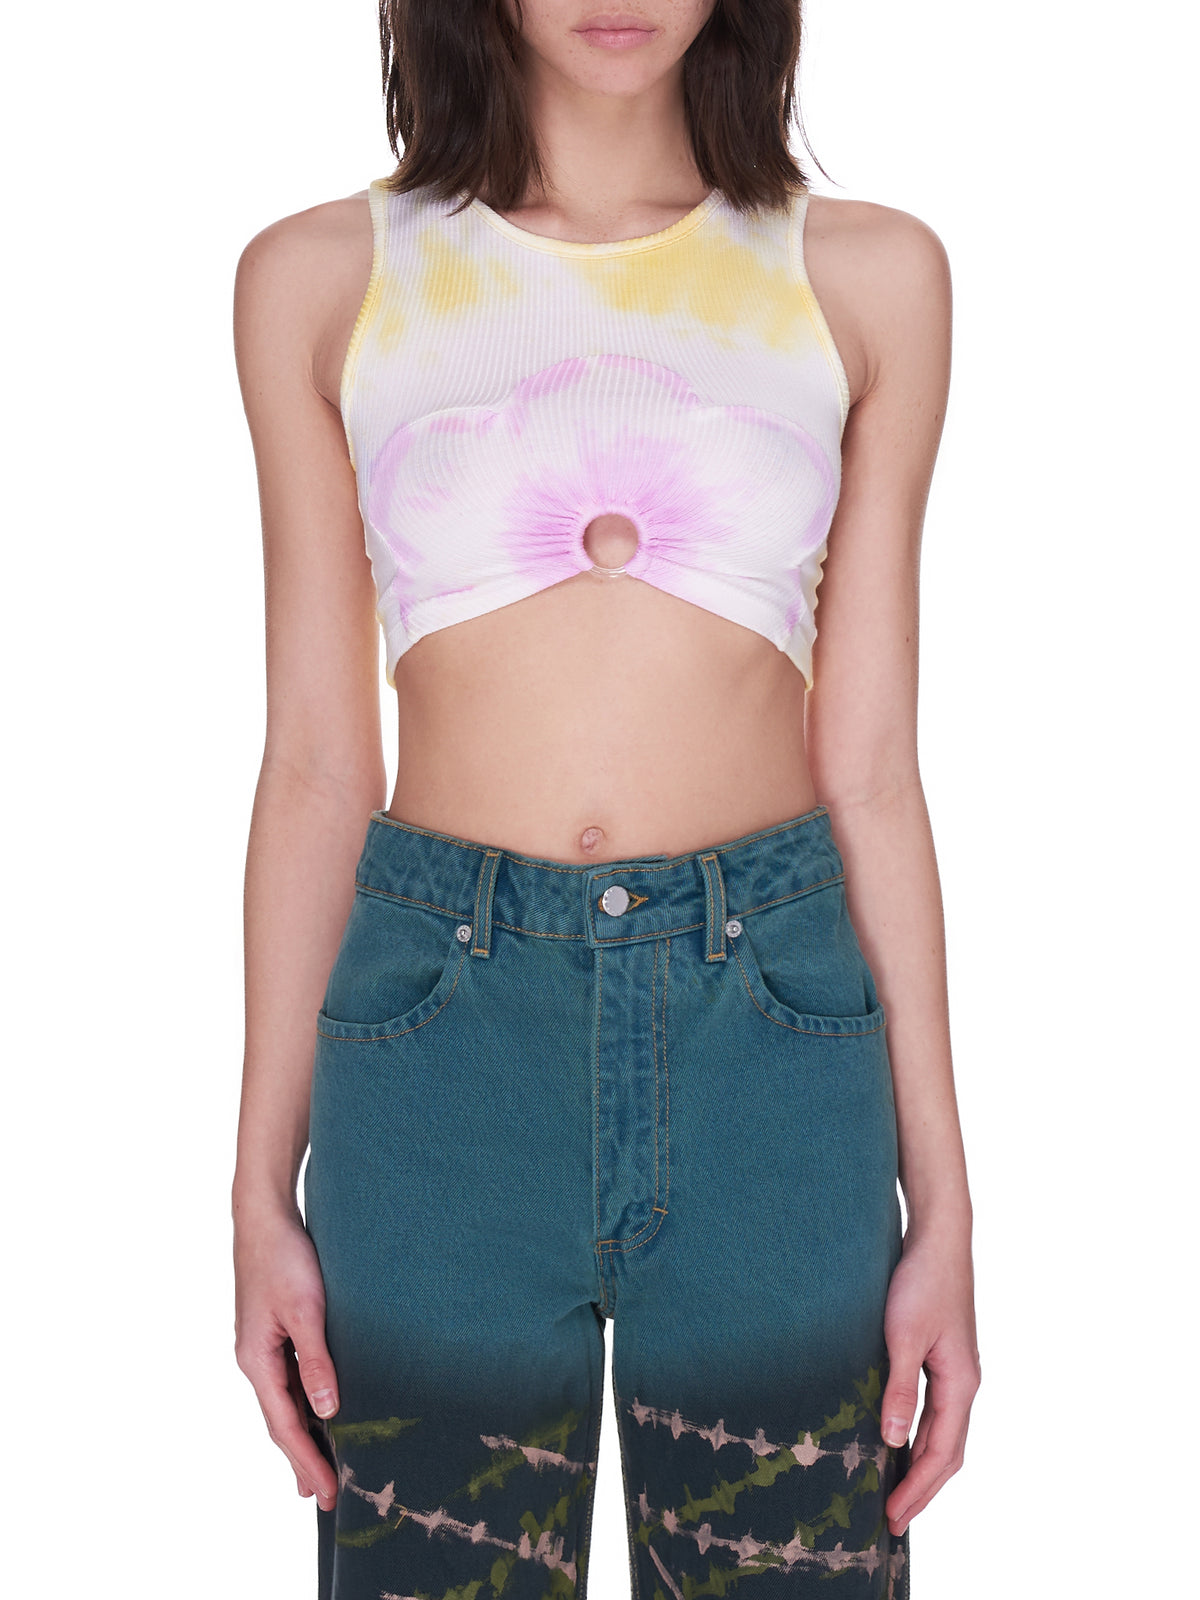 Ribbed Flower Crop Tank (XX3151-PINK-YELLOW)